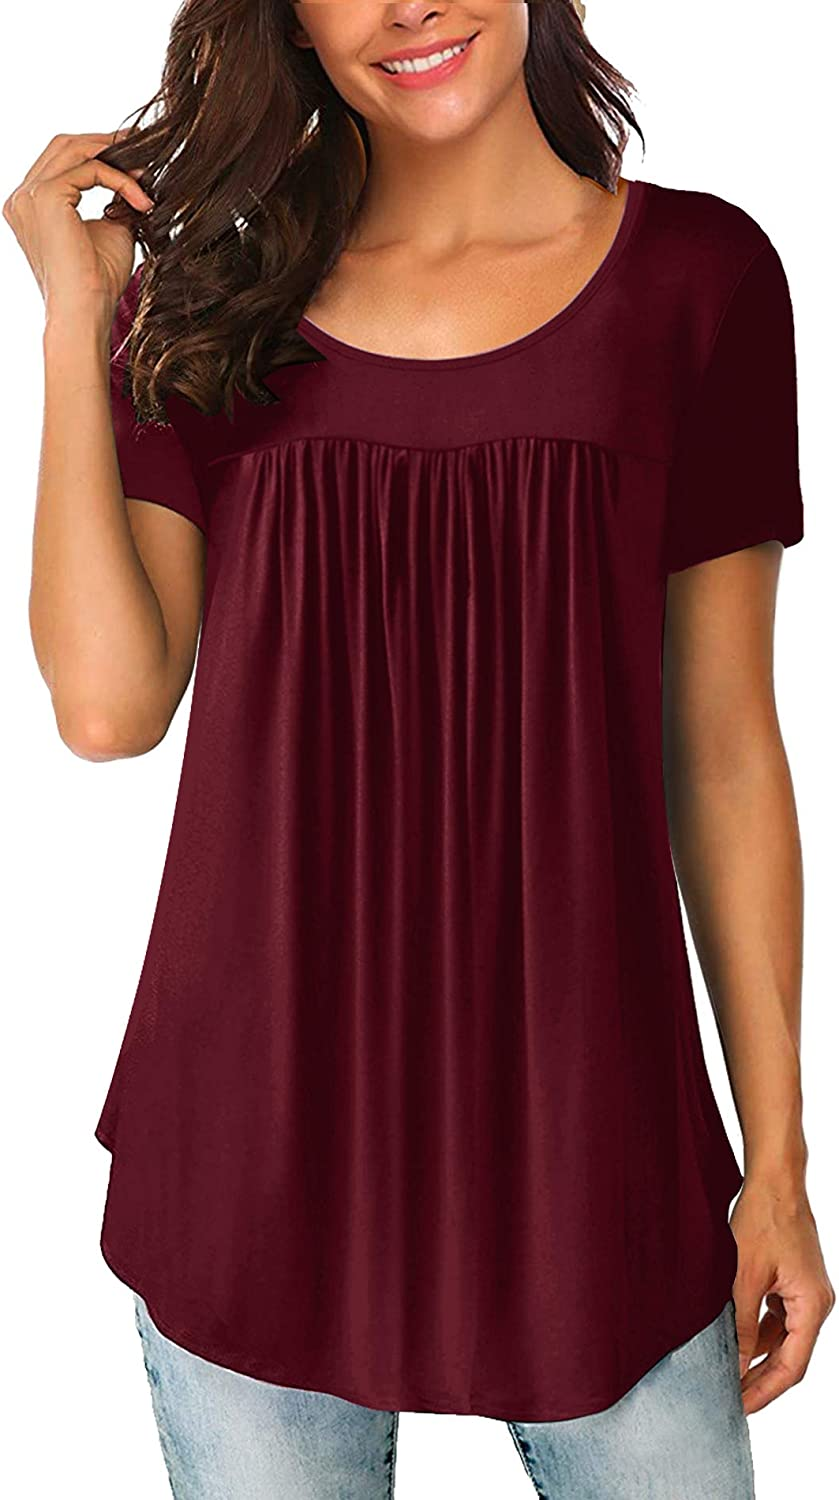 Yidarton Women's Scoop Neck Pleated Blouse Solid Color Tunic Tops Shirts